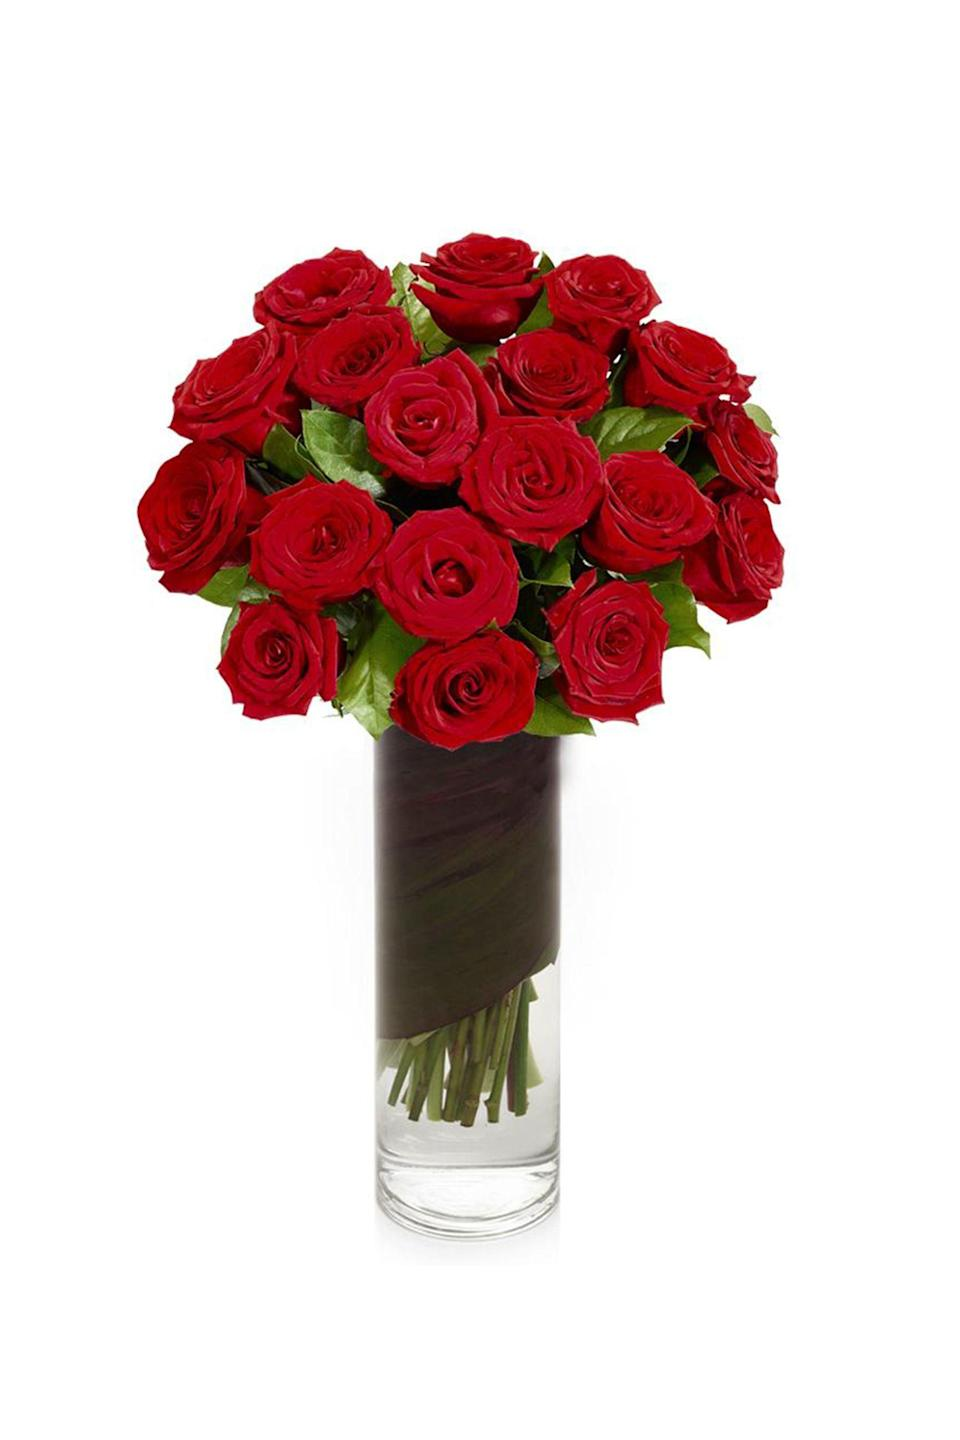 """<p><strong>H.Bloom</strong></p><p>hbloom.com</p><p><strong>$185.00</strong></p><p><a href=""""https://www.hbloom.com/collections/all-hbloom/products/2-dozen-red-roses-in-vase"""" rel=""""nofollow noopener"""" target=""""_blank"""" data-ylk=""""slk:Shop Now"""" class=""""link rapid-noclick-resp"""">Shop Now</a></p><p><a href=""""https://www.hbloom.com/"""" rel=""""nofollow noopener"""" target=""""_blank"""" data-ylk=""""slk:H.Bloom"""" class=""""link rapid-noclick-resp"""">H.Bloom</a> is where luxury and floral arrangements meet. Founded in 2010, they believe flowers are living art. H.Bloom also offers a subscription service of custom floral arrangements tailored to your style and space, starting at just $75 per delivery.</p>"""